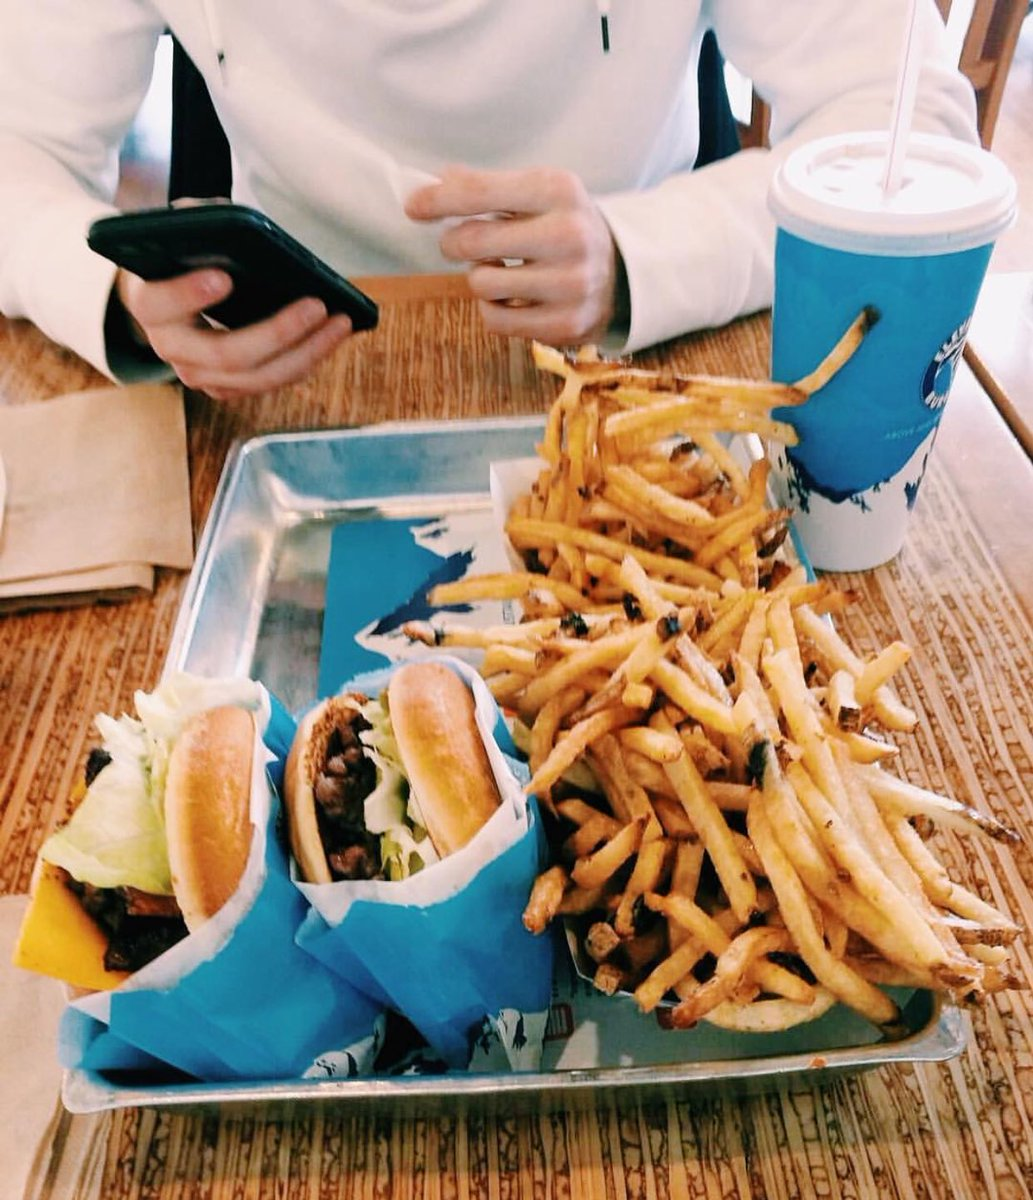 rain drop drop top get your elevation burger chop chop https://t.co/yzS9ZHwRUV